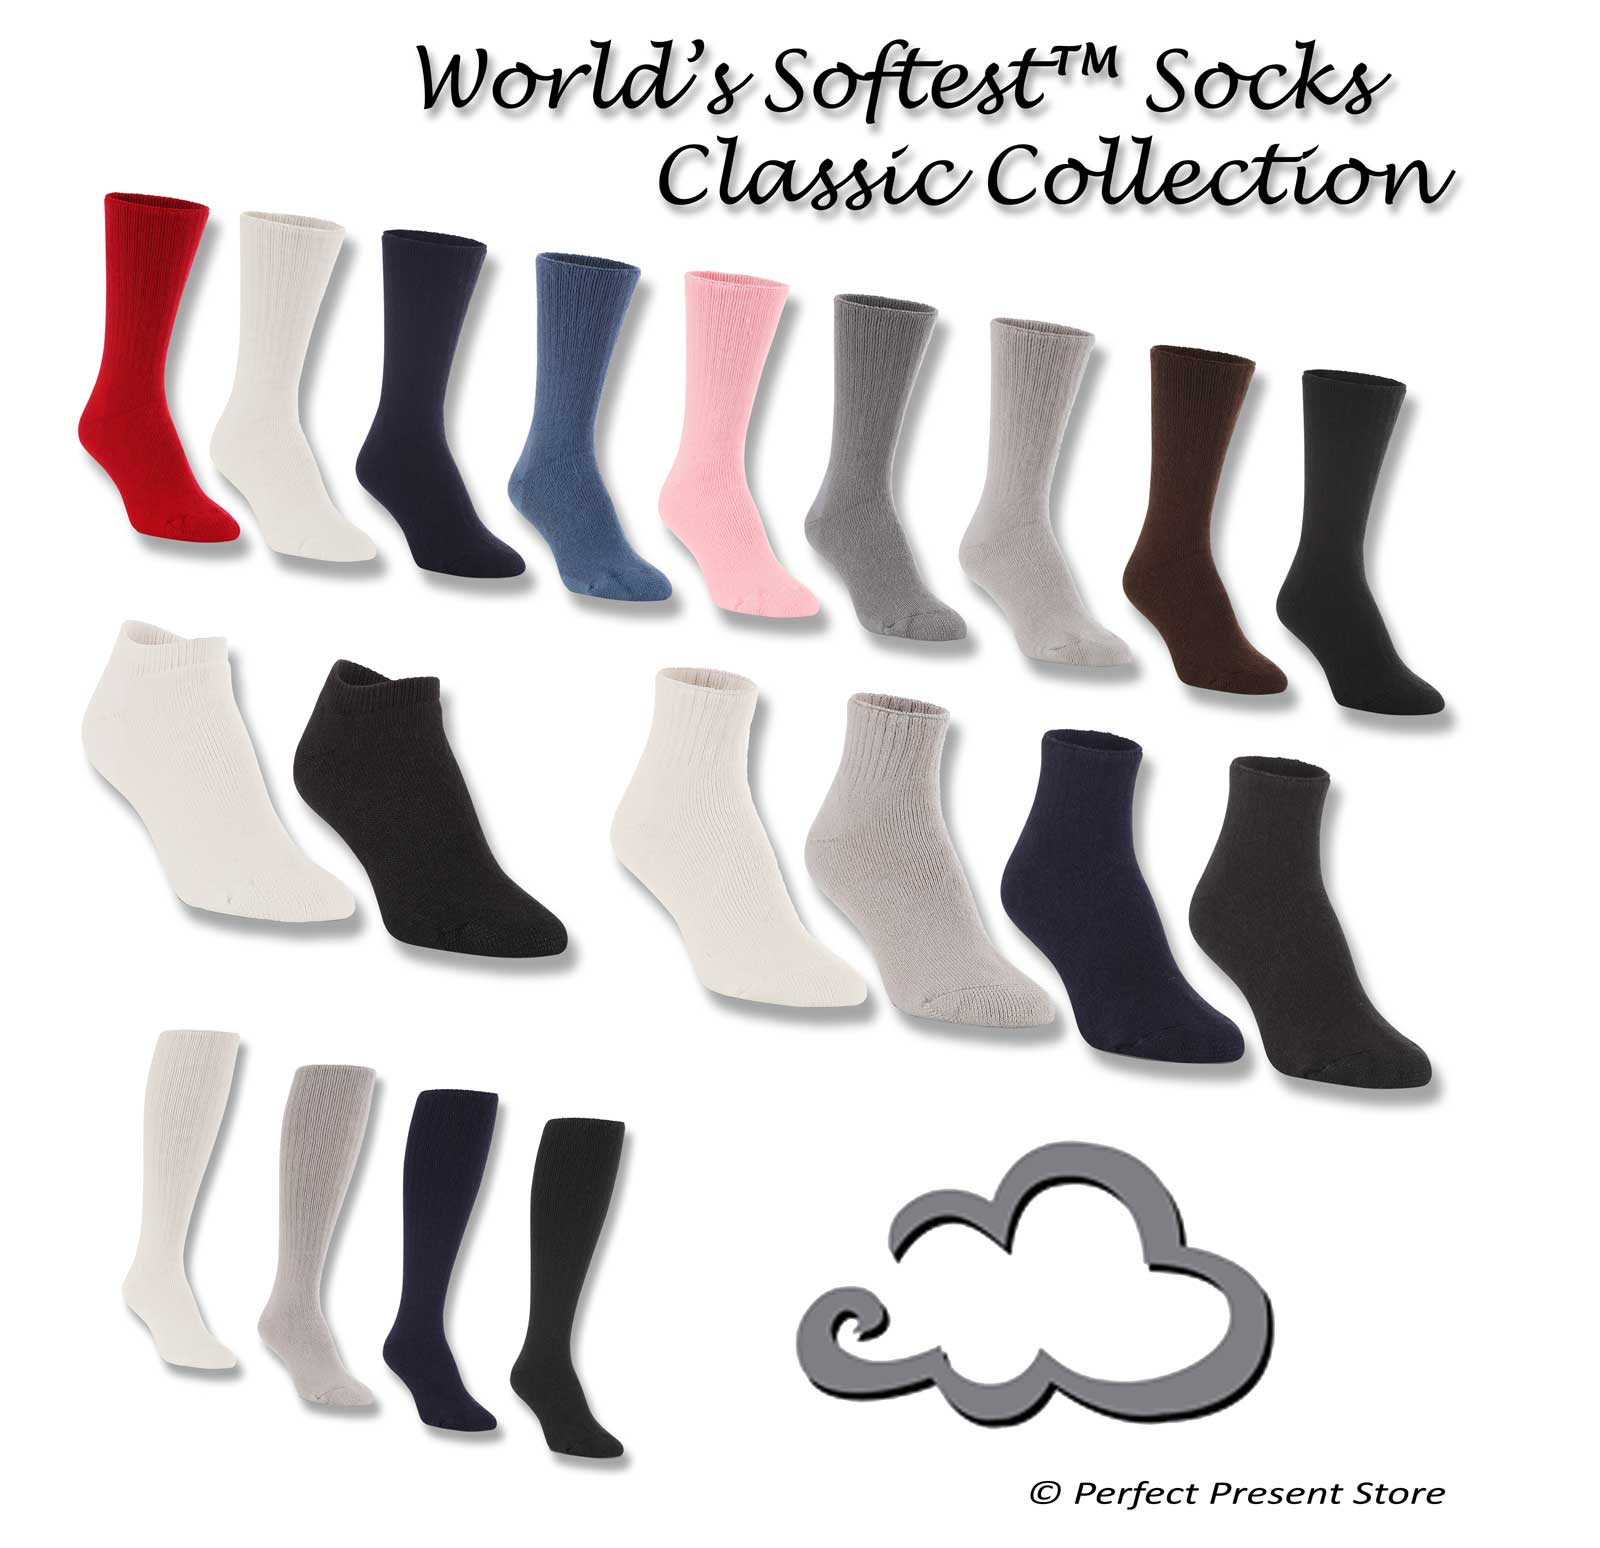 World's SoftestClassic Socks